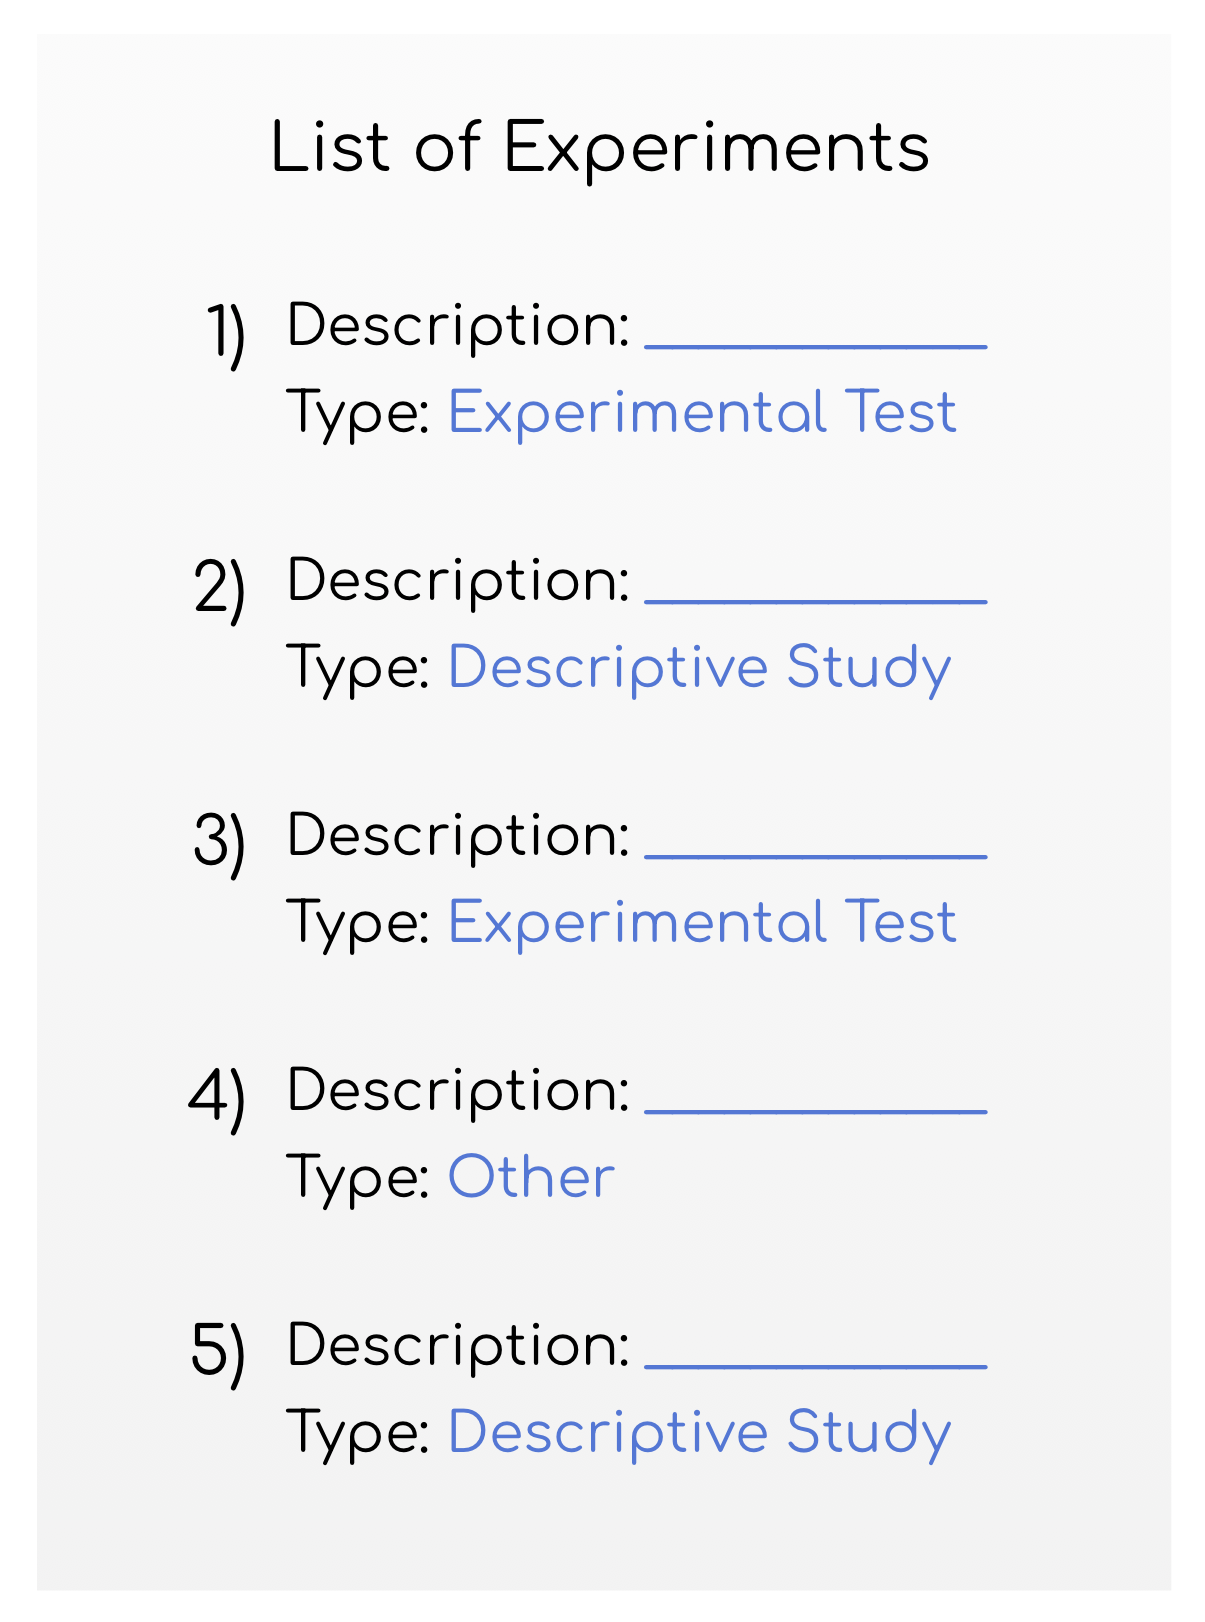 Abstract representation of list of experiments with type of study.